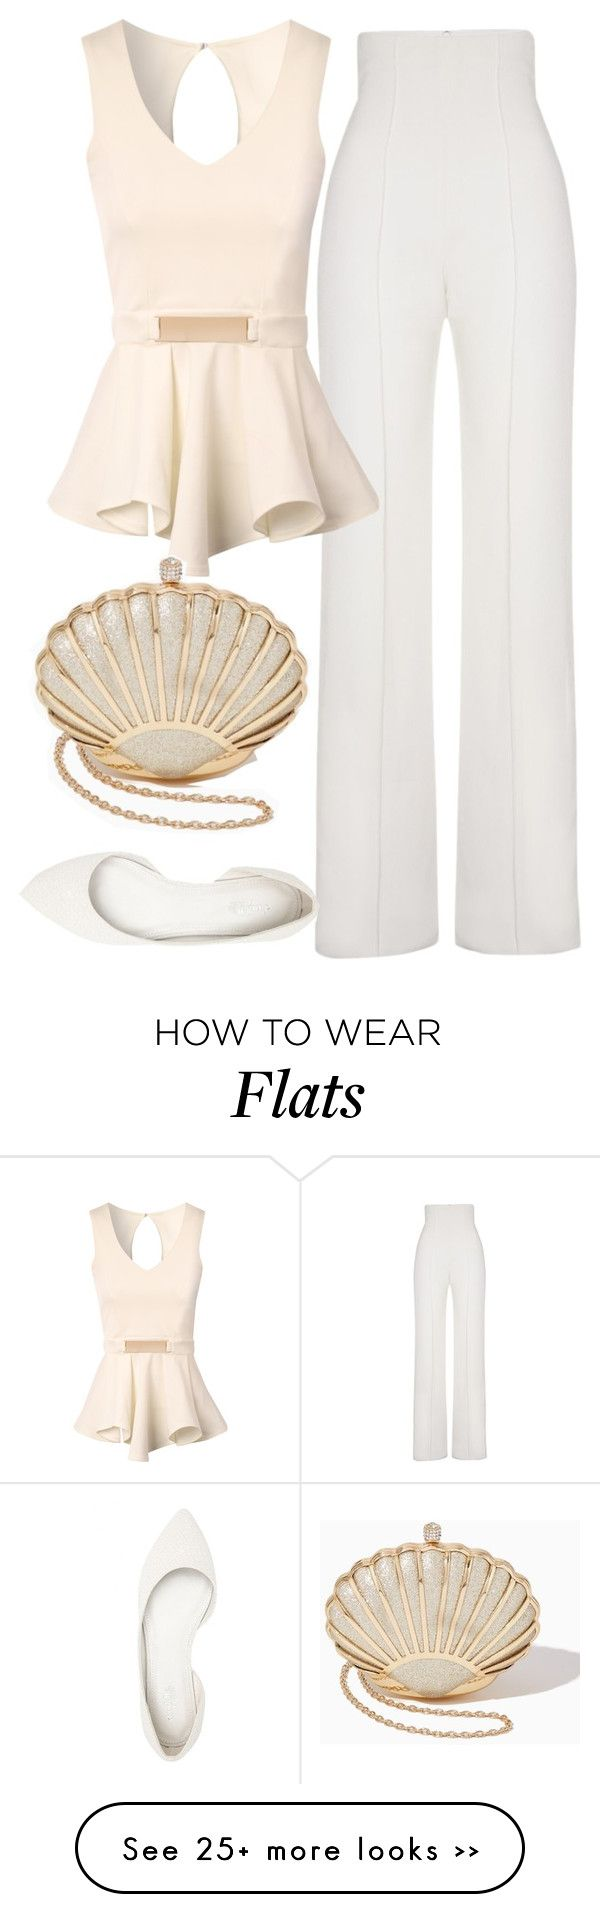 """Untitled #153"" by kimberley-hampton on Polyvore"